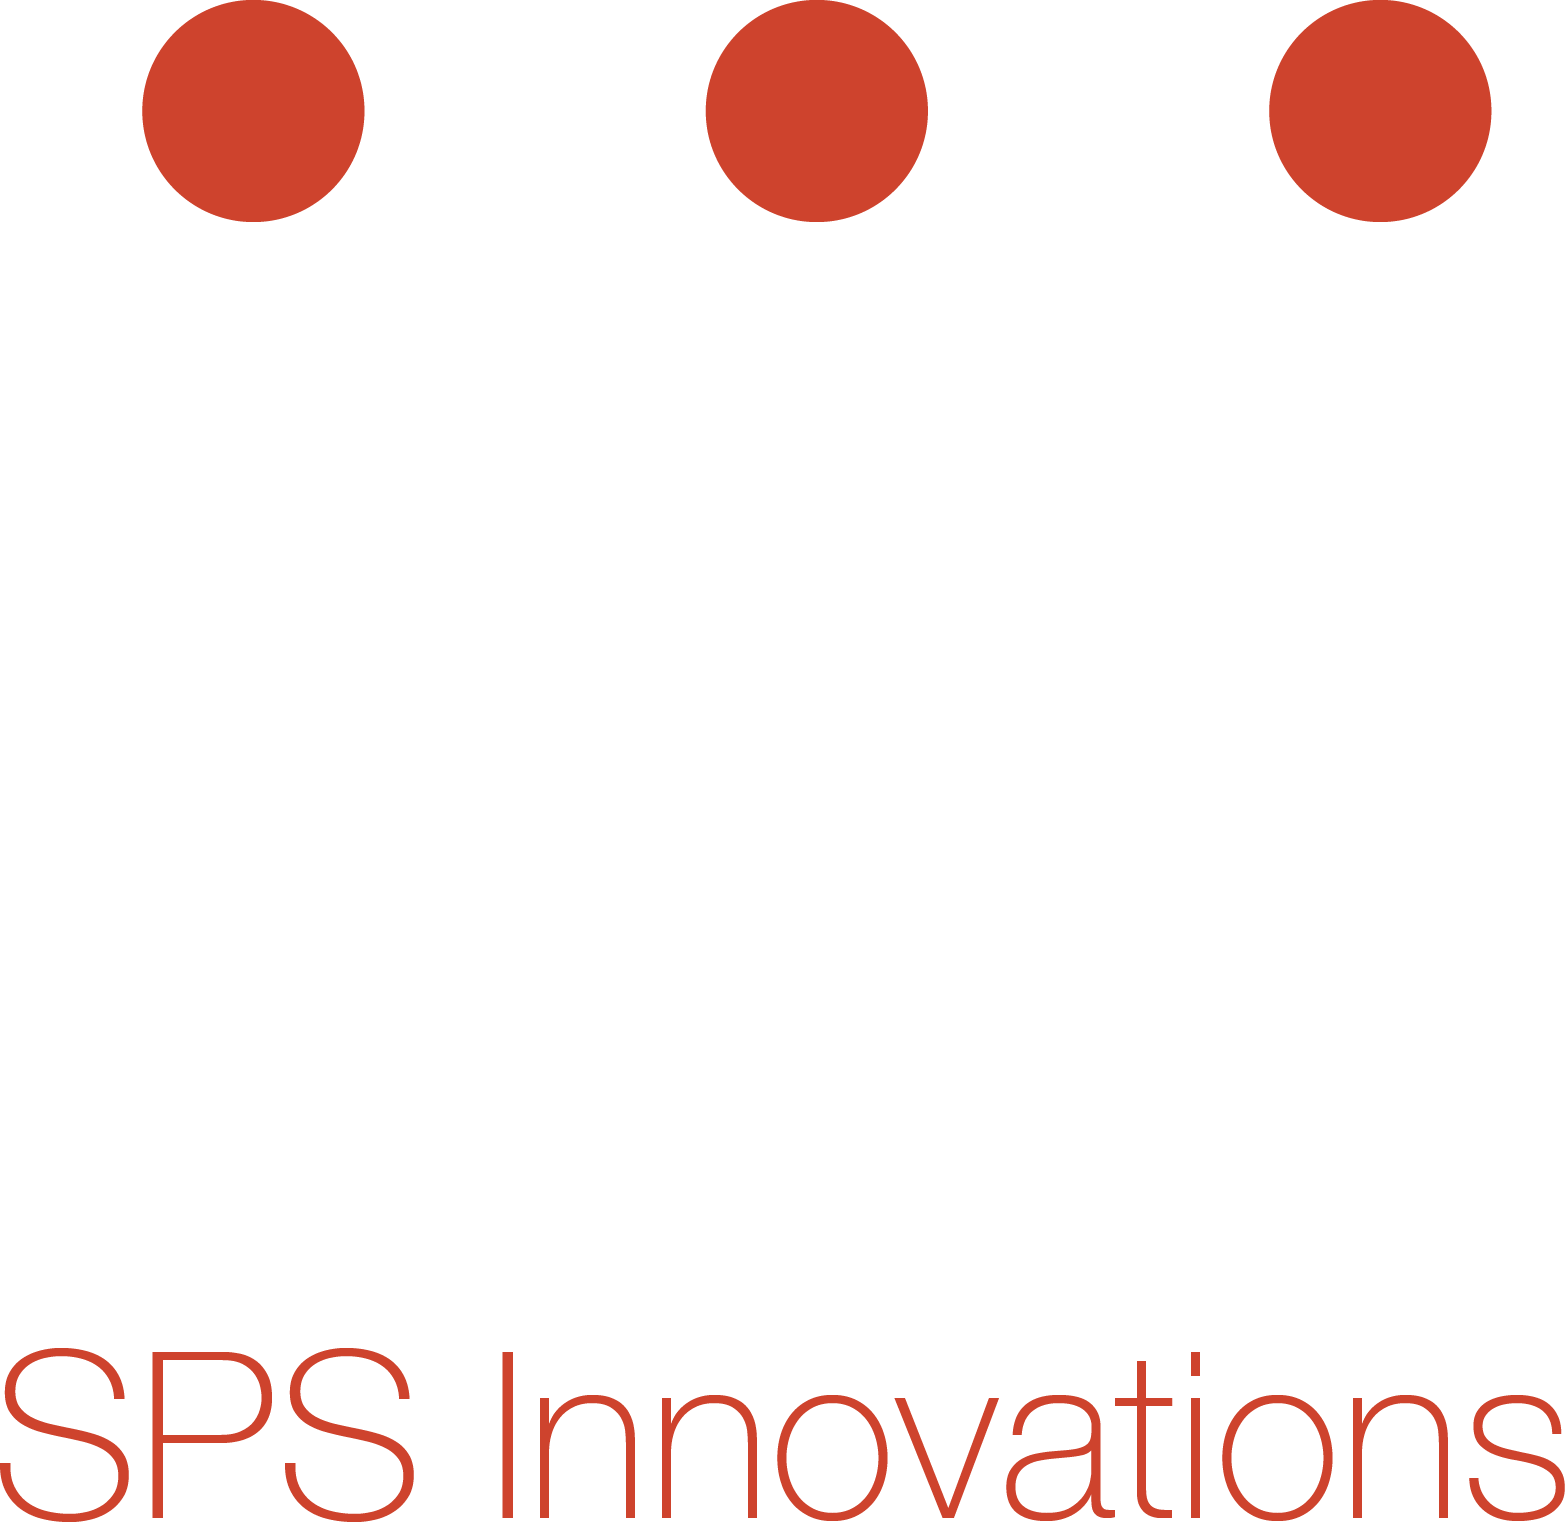 SPS Innovations